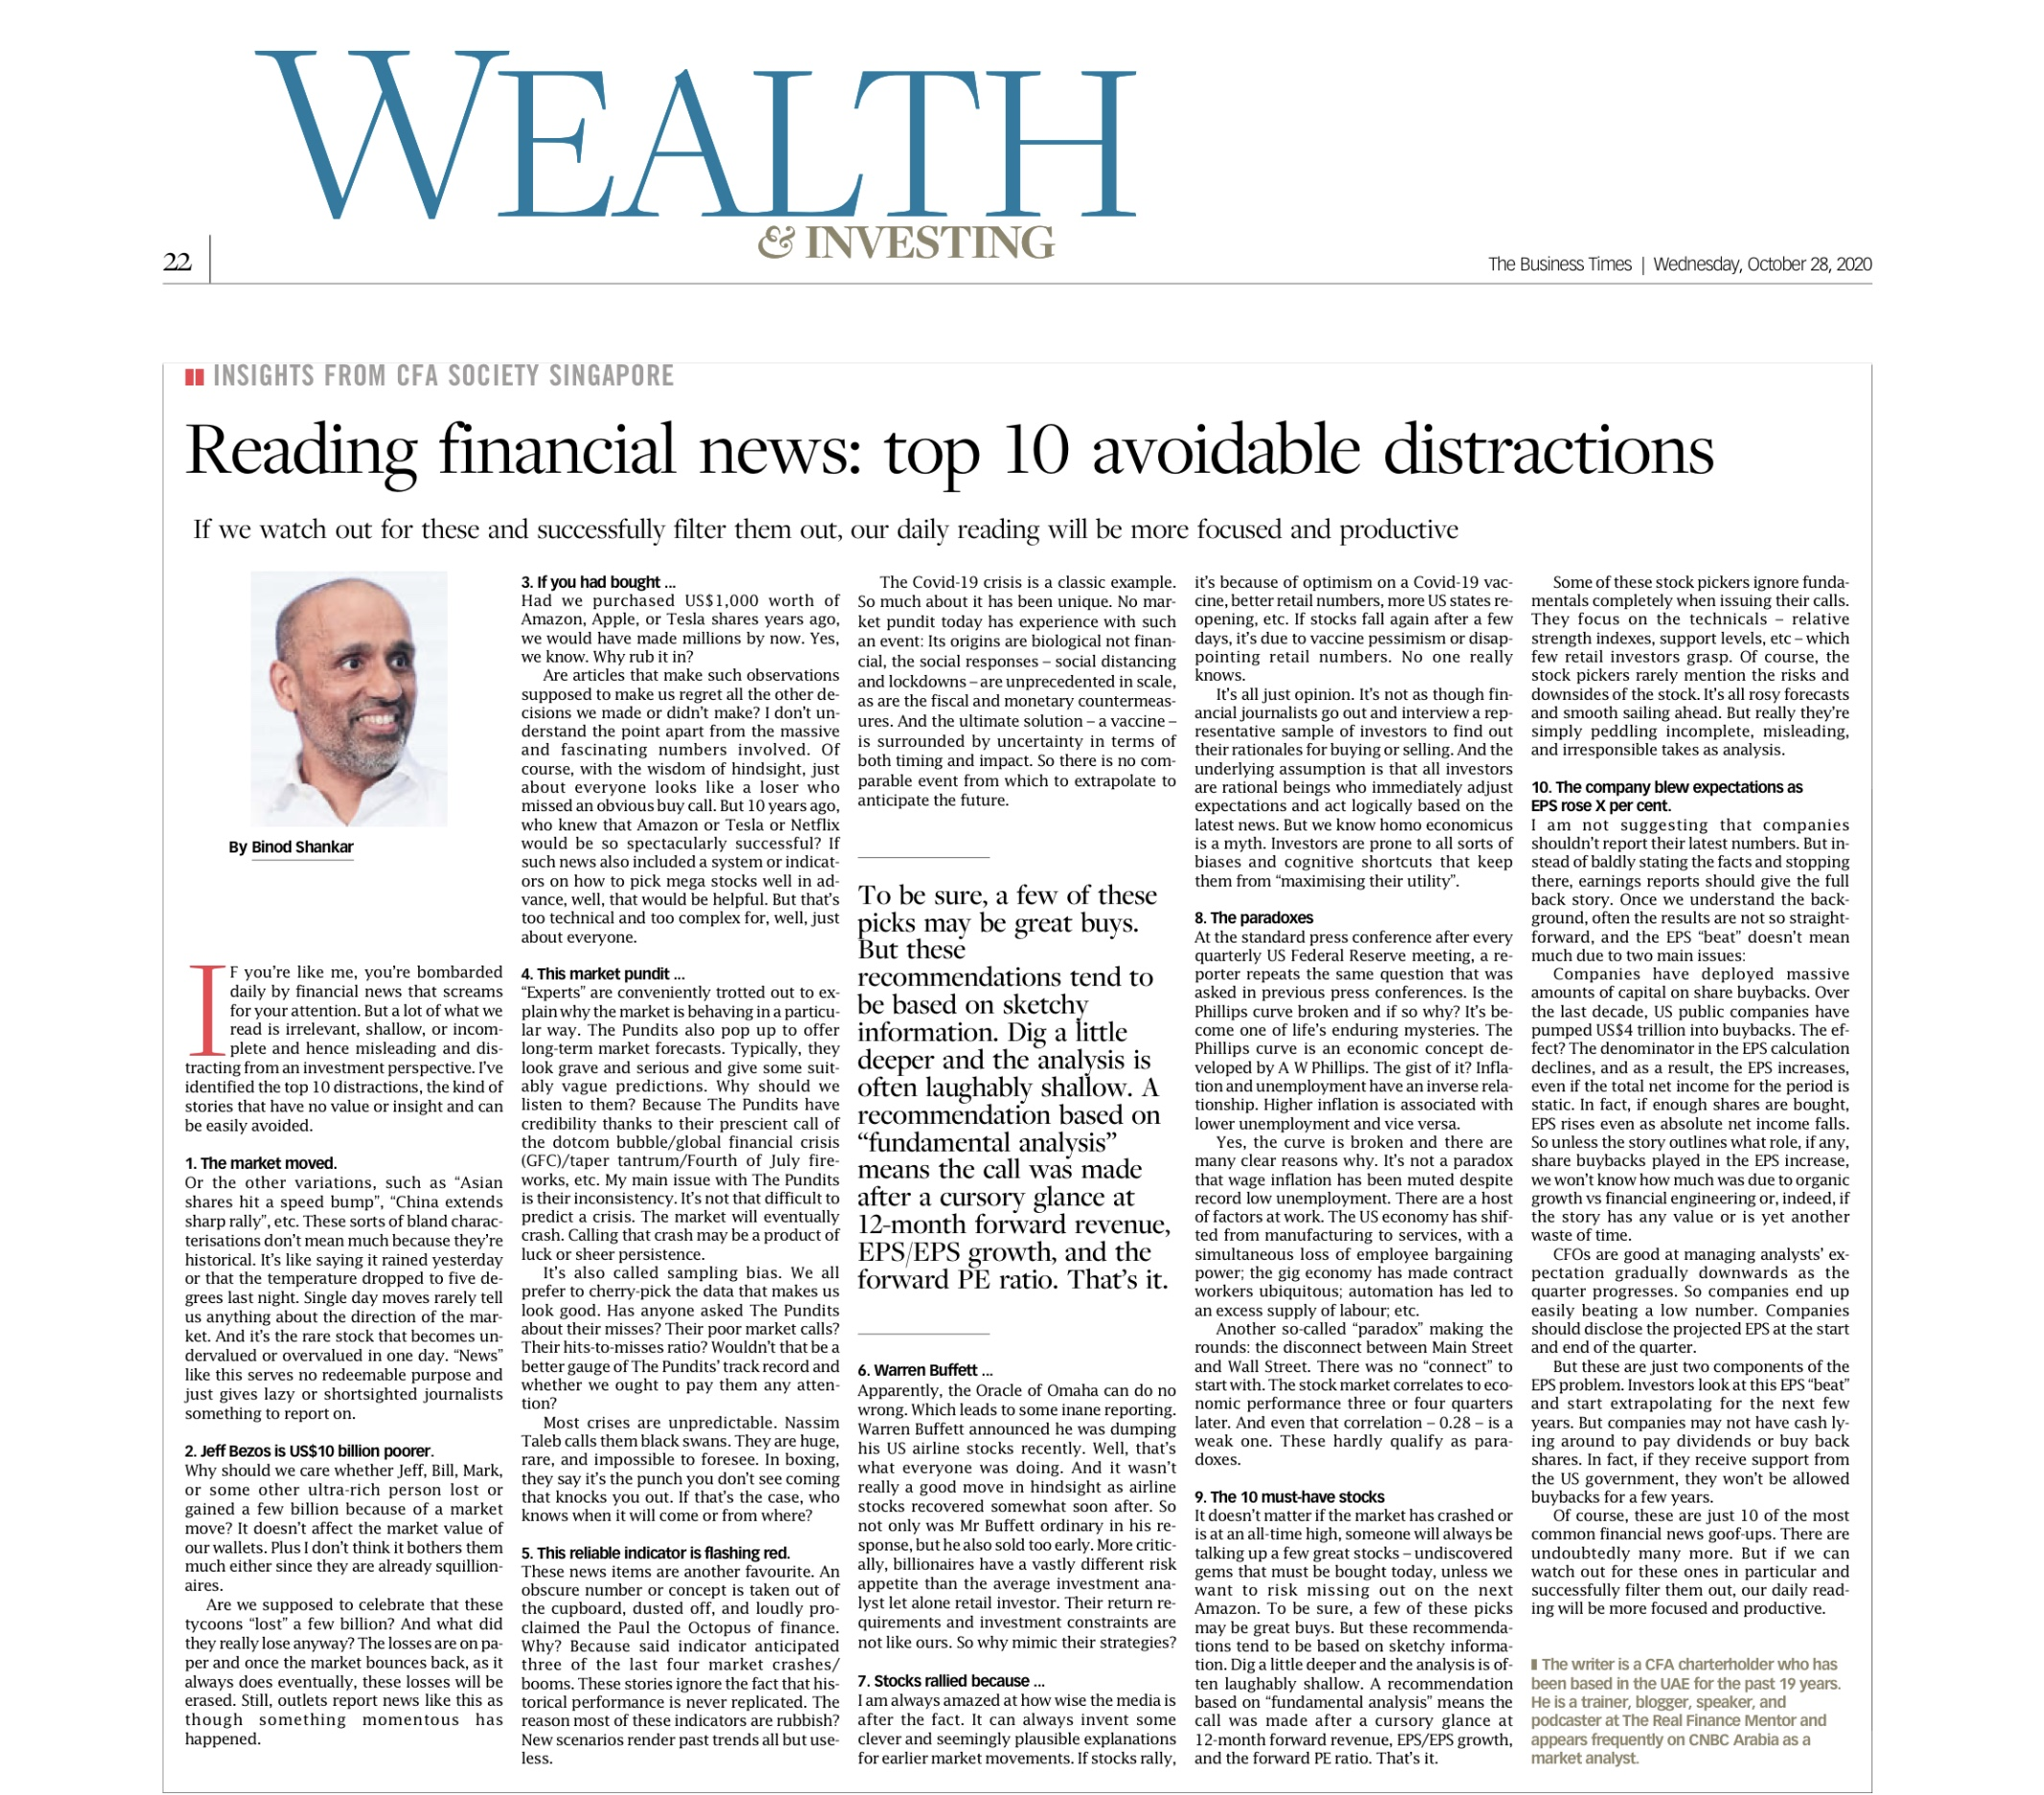 FinancialNews